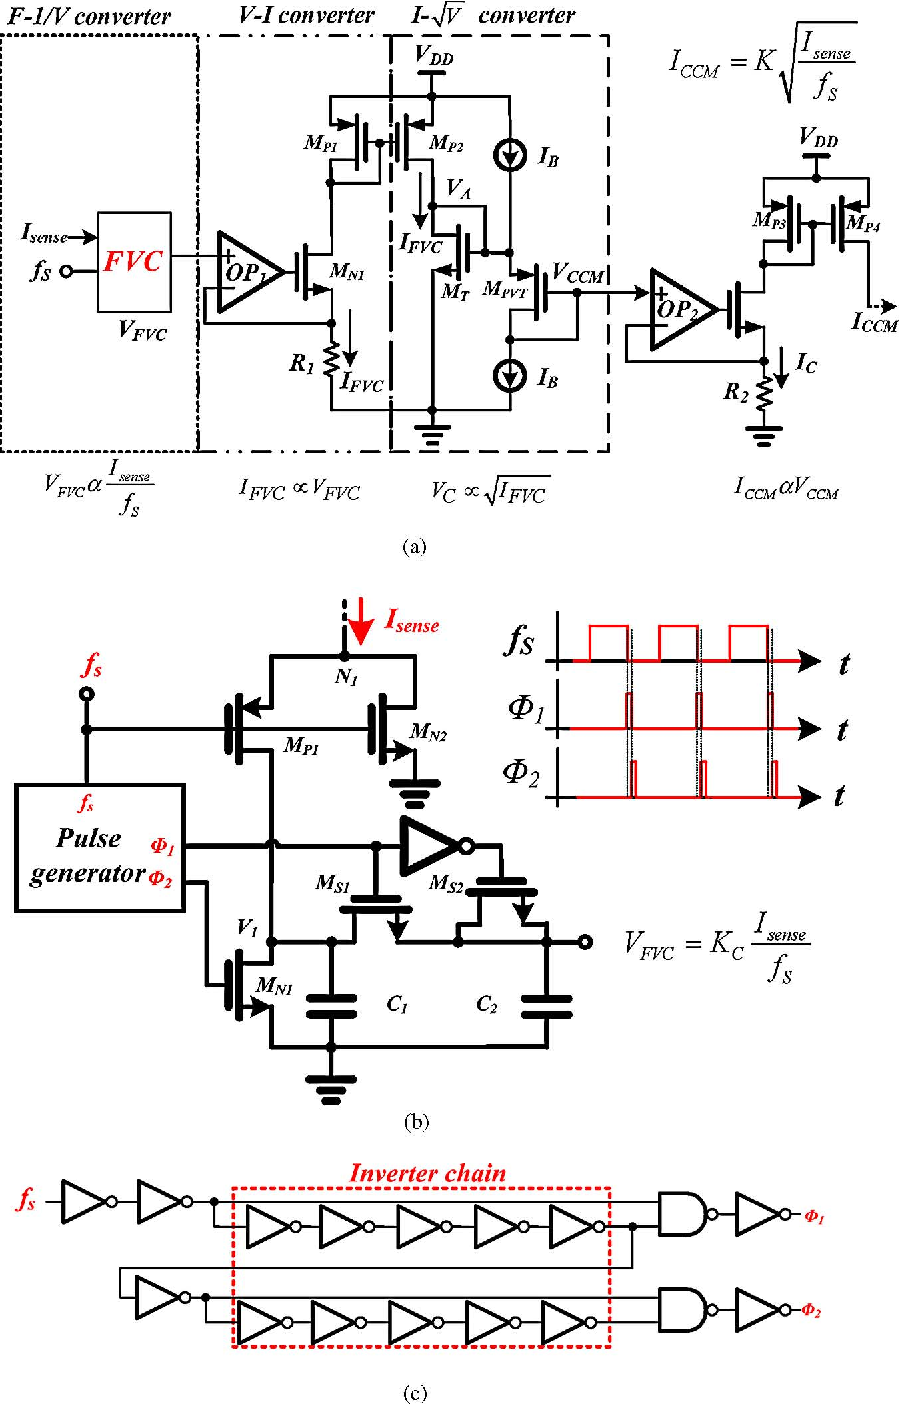 Figure 5 From Adaptive Window Control Awc Technique For Hysteresis Automatic Delay Light Switch Circuit Controlcircuit A Ccm Ldh B